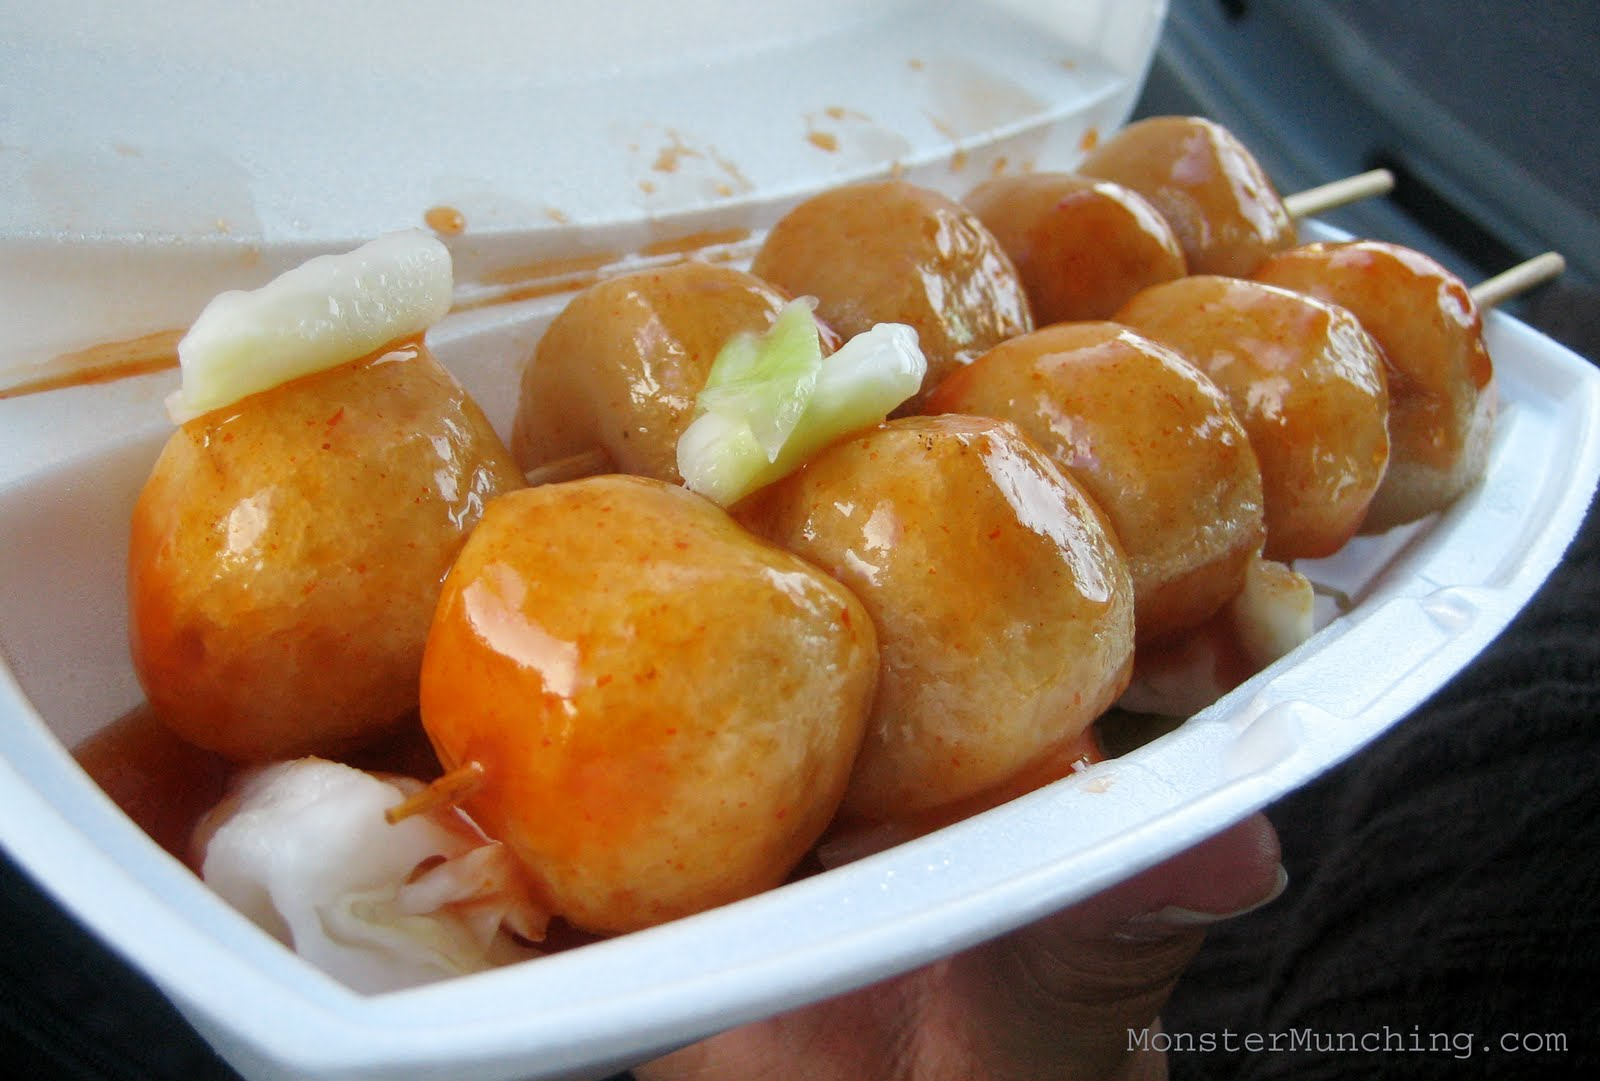 Monster munching hong kong fishball house 39 s fishballs on for What is fish food made of